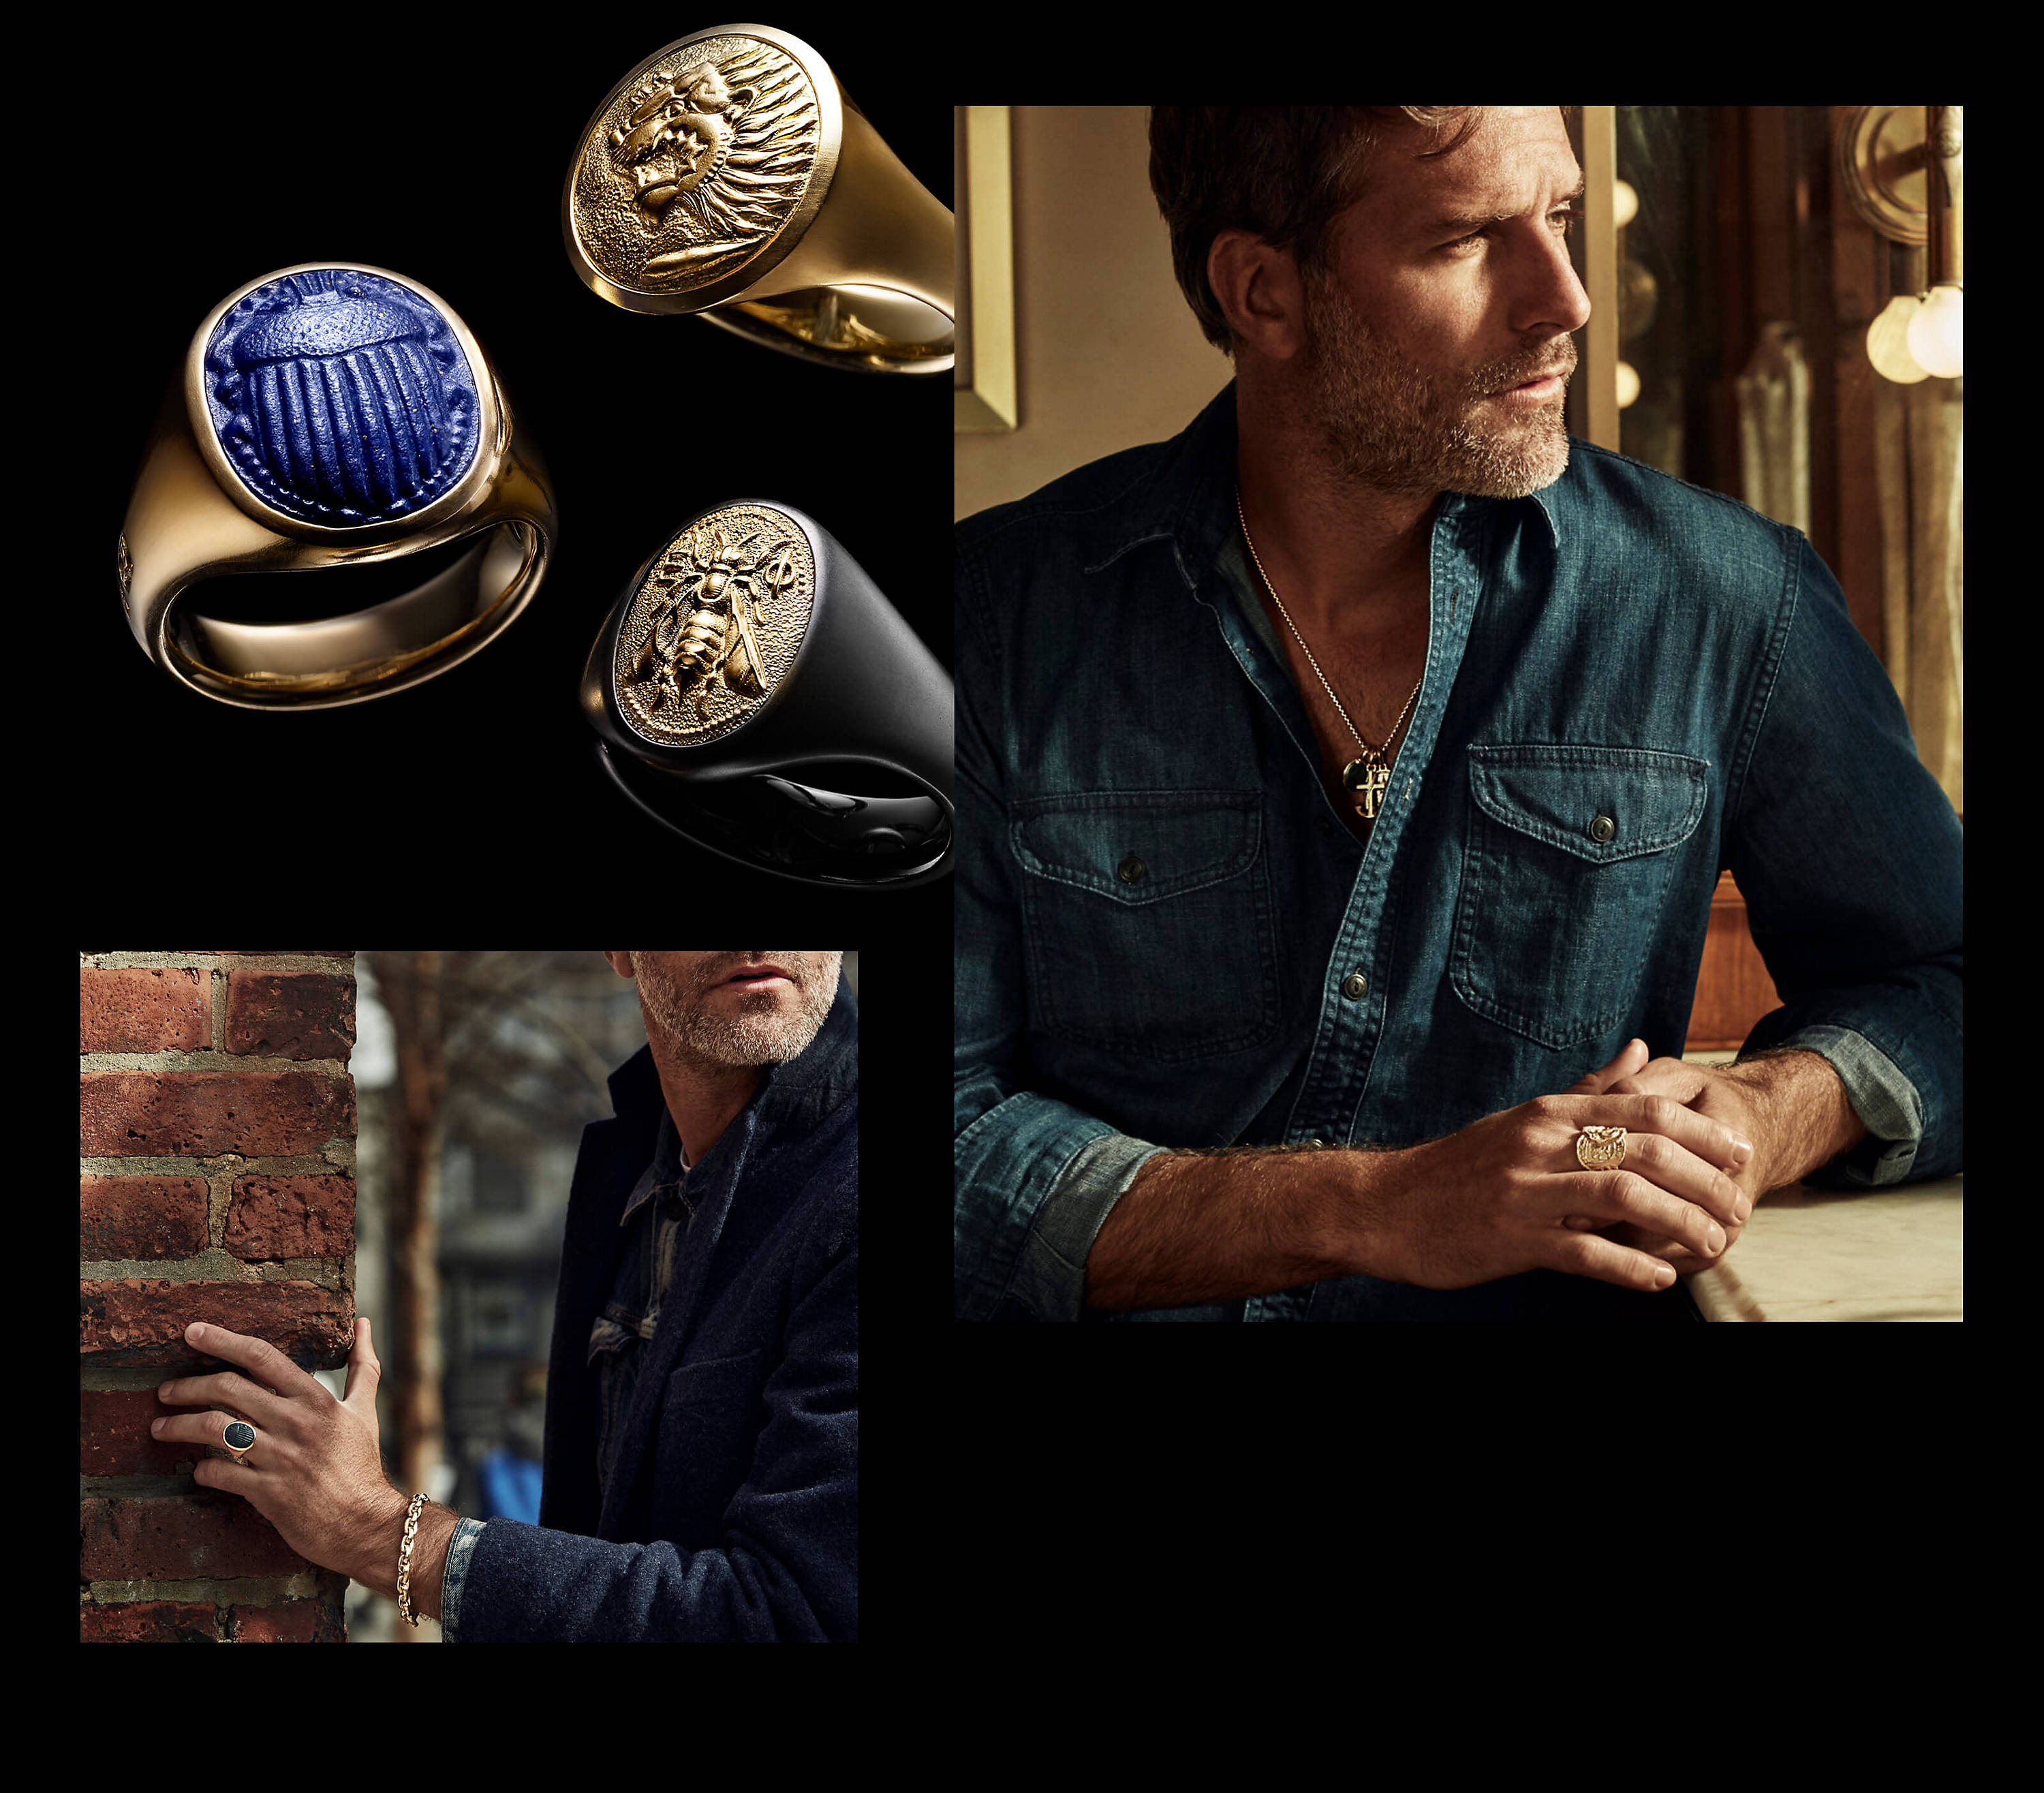 A color photo shows three images arranged in a collage. In the upper left section is a photo of three David Yurman men's Petrvs signet rings standing up right in a group on top of a black surface. Clockwise from left is a scarab ring in 18K yellow gold with lapis lazuli, a lion ring in 18K yellow gold and a bee ring in black titanium with 18K gold. In the section to the right is a photo showing a man wearing David Yurman jewelry is overlaid over most a color photograph of an abstract, zoomed-in perspective of David Yurman's forged carbon material. The man is seen from the waist up standing at a beige stone table in front of a wood-paneled mirror with a brass sconce fixed at the top. The sconce is circular and features a protruding, minimalist, cylindrical fixture with a single, illuminated yellow lightbulb hanging from the bottom. The man is on the left-hand side of the photograph looking to the right, with the portion of his face turned toward the camera covered in shadow. He is wearing a dark blue denim shirt with a few buttons undone from the top to show a David Yurman chain necklace strung with three David Yurman men's amulets crafted from 18K yellow gold. He is also wearing a David Yurman men's Shipwreck band ring in 18K yellow gold on his right middle finger. In the lower left section is a photo of a man standing outside with his left hand holding on to the side of a brick wall. He and the brick wall are partly cast in shadow. A bare tree is seen in the distance behind him. He is wearing a dark blue coat over a light blue denim trucker-style jacket, as well as a David Yurman men's Petrvs scarab ring and a Streamline link bracelet. The jewelry is crafted from 18K yellow gold with or without bloodstone.